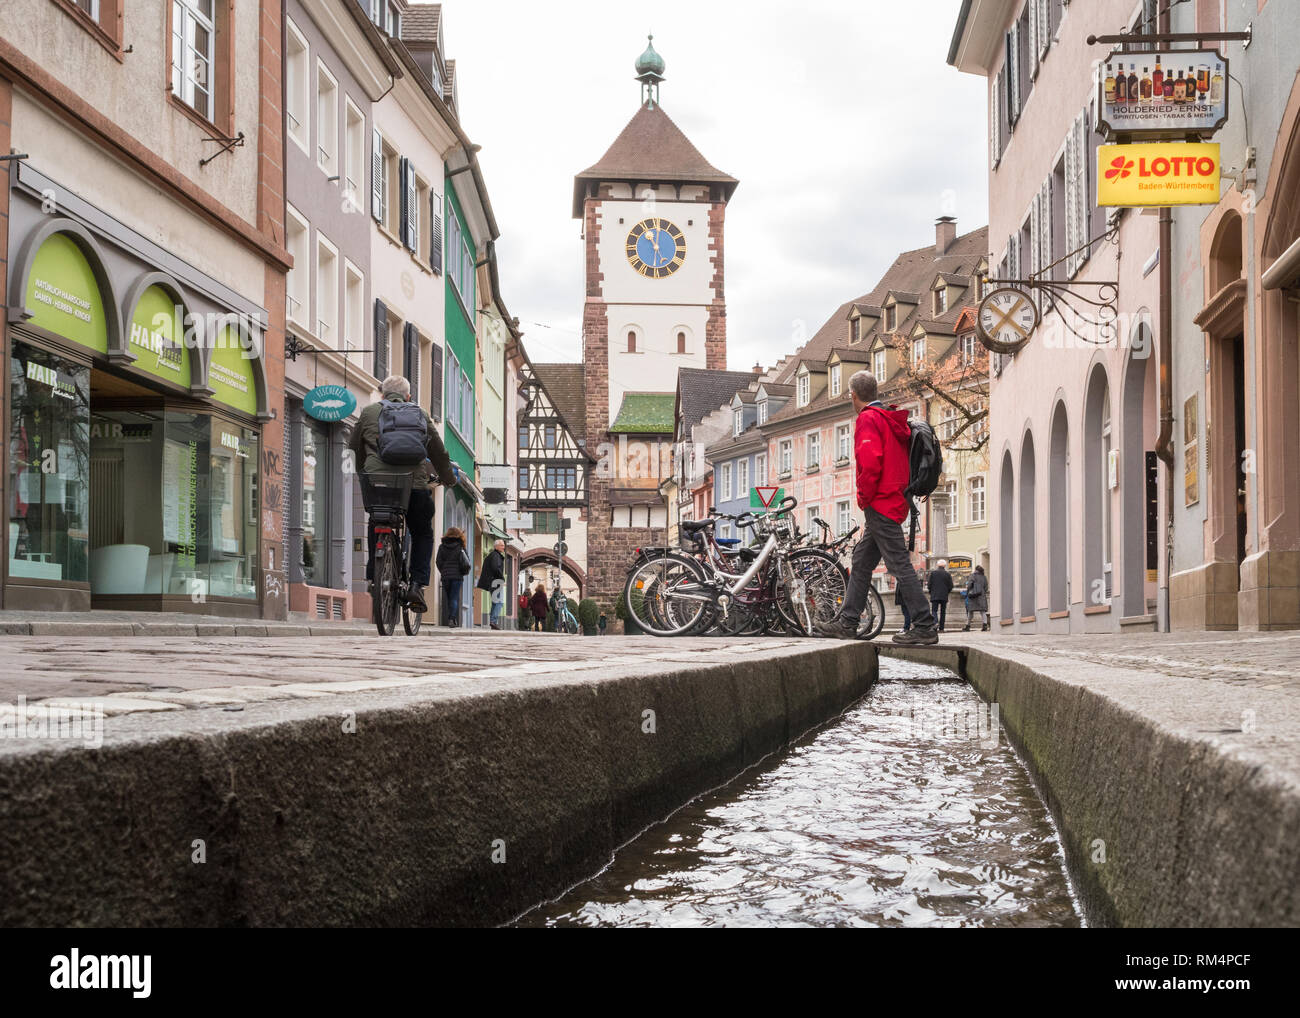 tourist crossing over a bachle - a water filled runnel - in front of the Schwabentor (Swabian city gate) in Freiburg im Breisgau, Germany, Europe - Stock Image